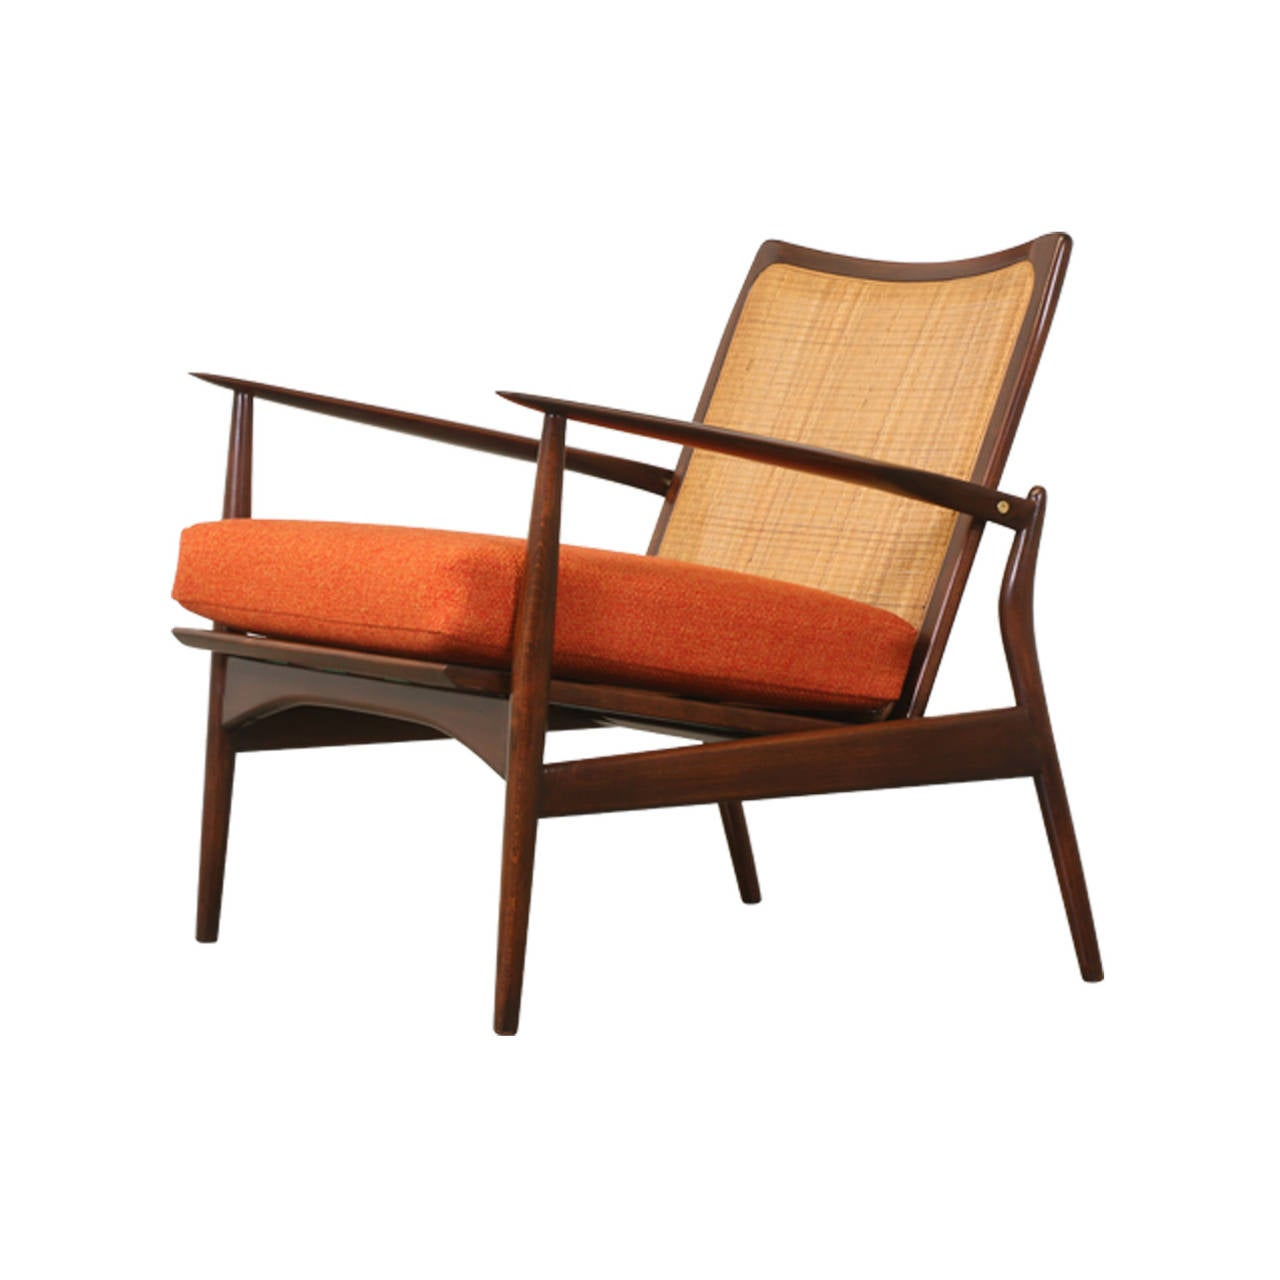 This sculptural pair of lounge chairs by ib kofod larsen is no longer - Ib Kofod Larsen Spear Chair For Selig 3